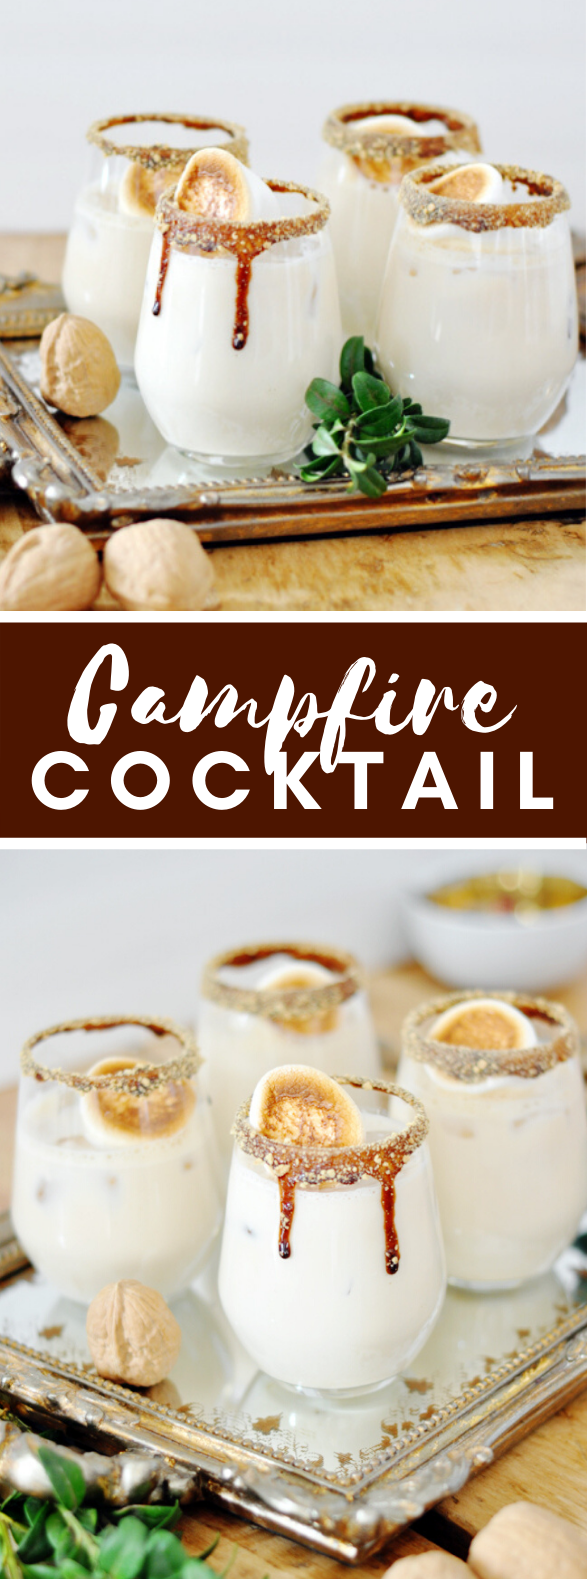 CAMPFIRE COCKTAIL #drinks #christmas